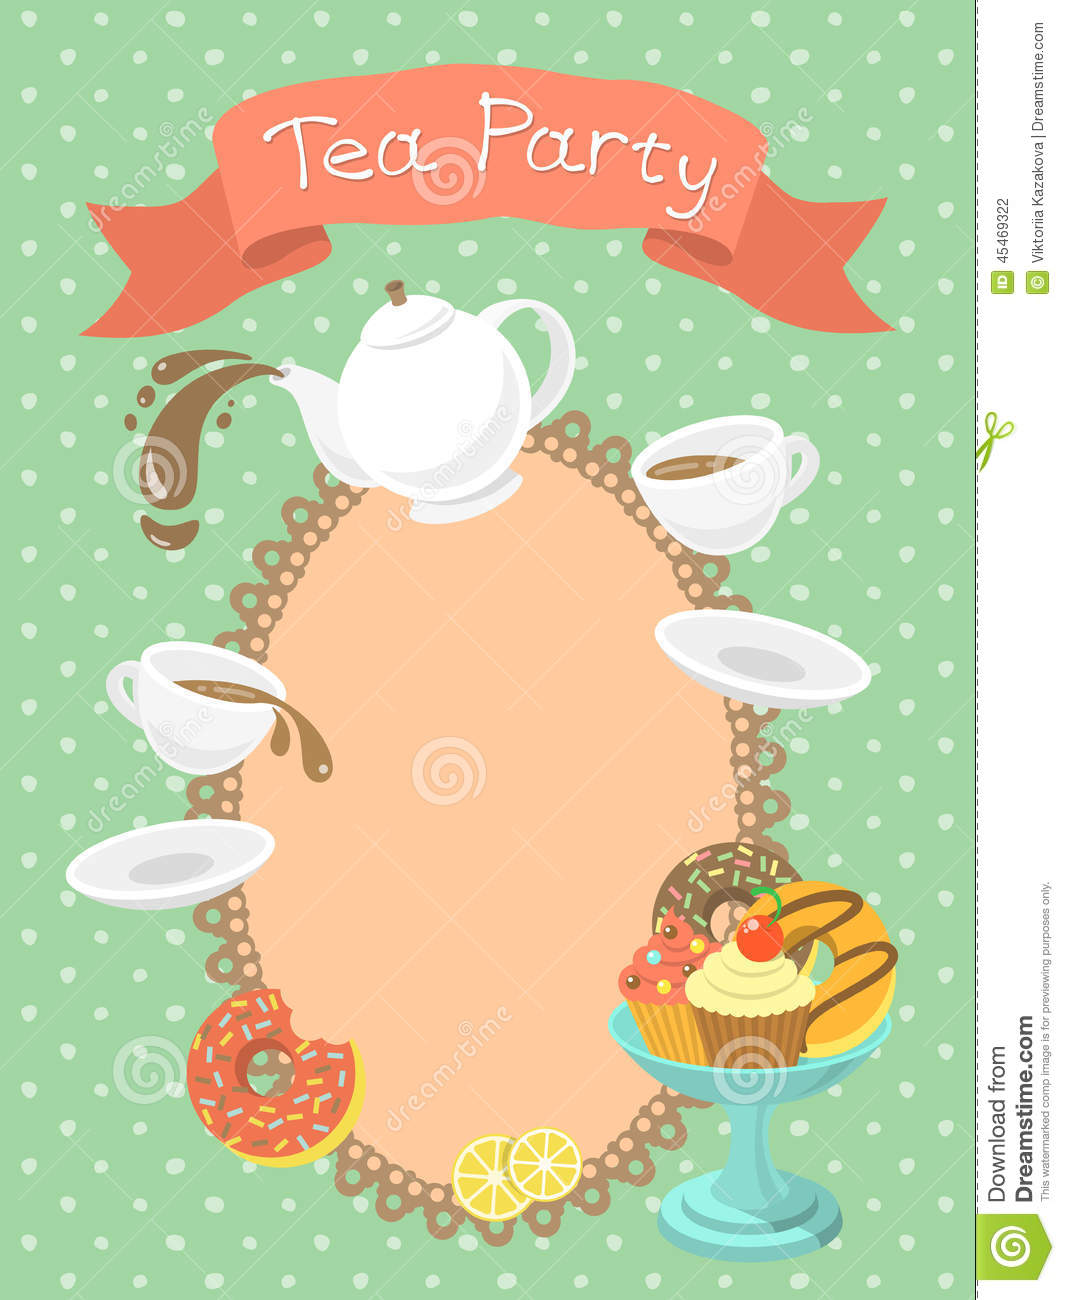 Tea Party Invitation Vector Image 45469322 – Invitation for Tea Party